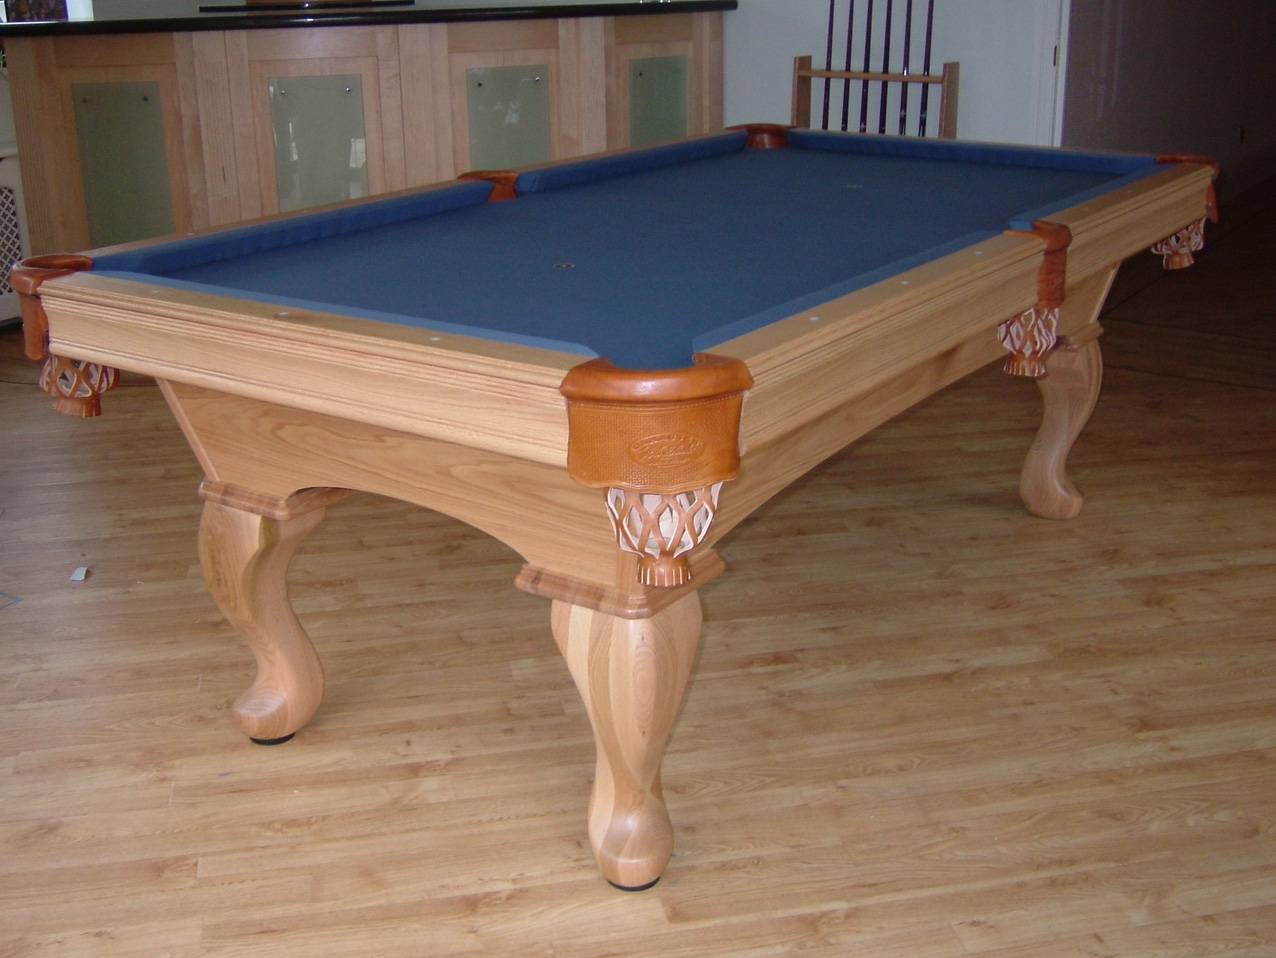 Olhausen Eclipse Pool Table In Oak With Blue Cloth